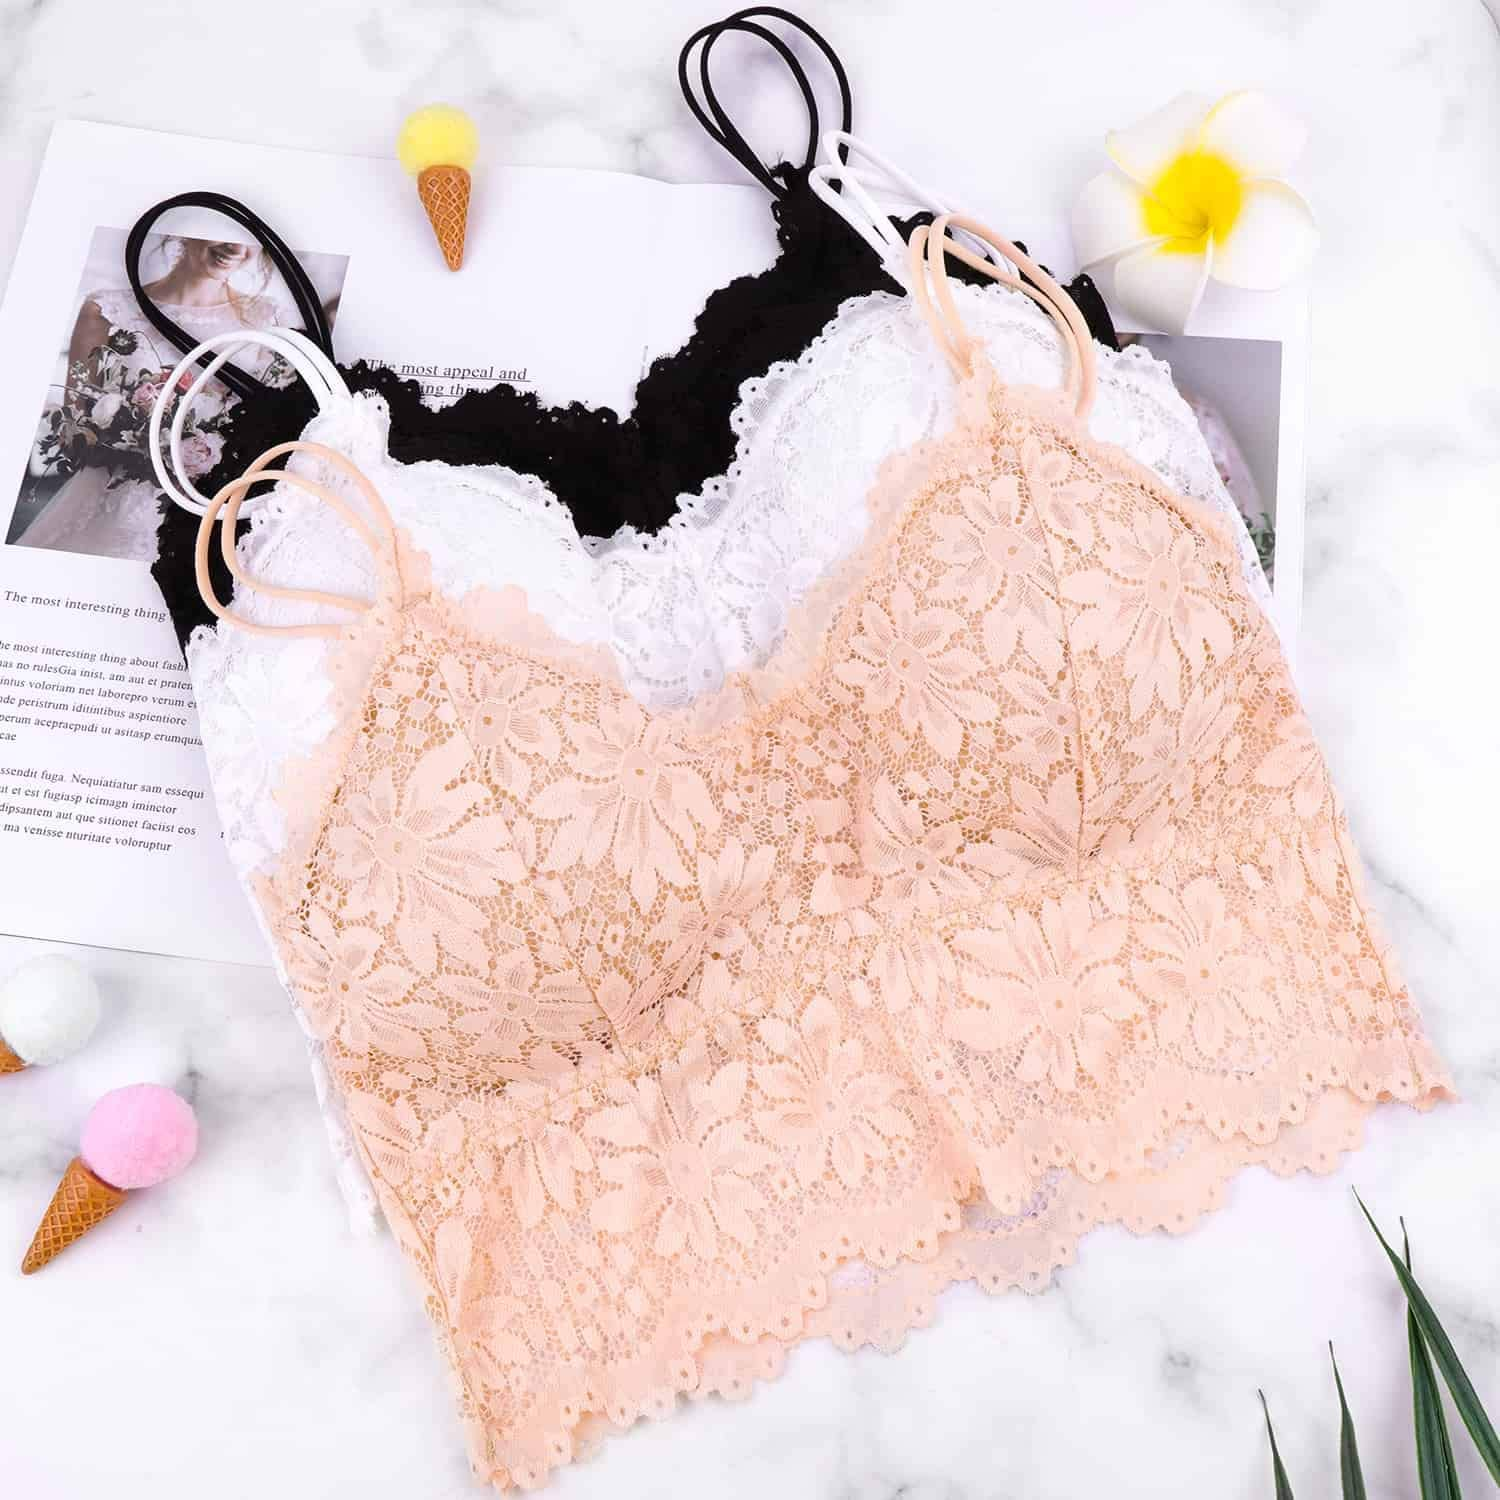 PAXCOO 3 Pcs Lace Bralette for Women Lace Bralette Padded Lace Bandeau Bra with Straps for Women Girls